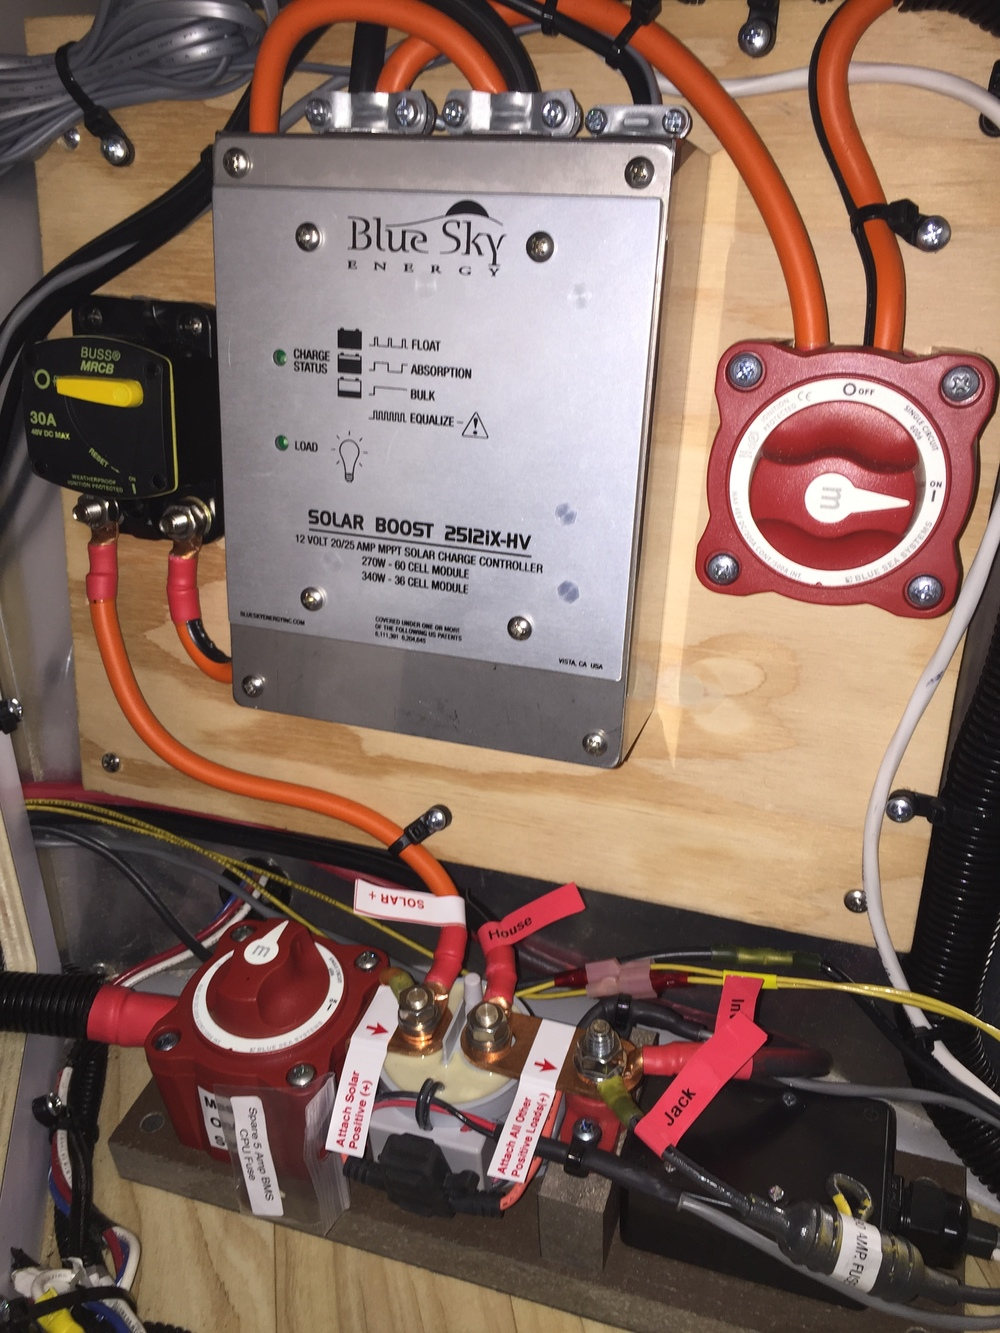 Blue Sky 2512iX-HV MPPT Charge Controller and AMS Lithium BMS